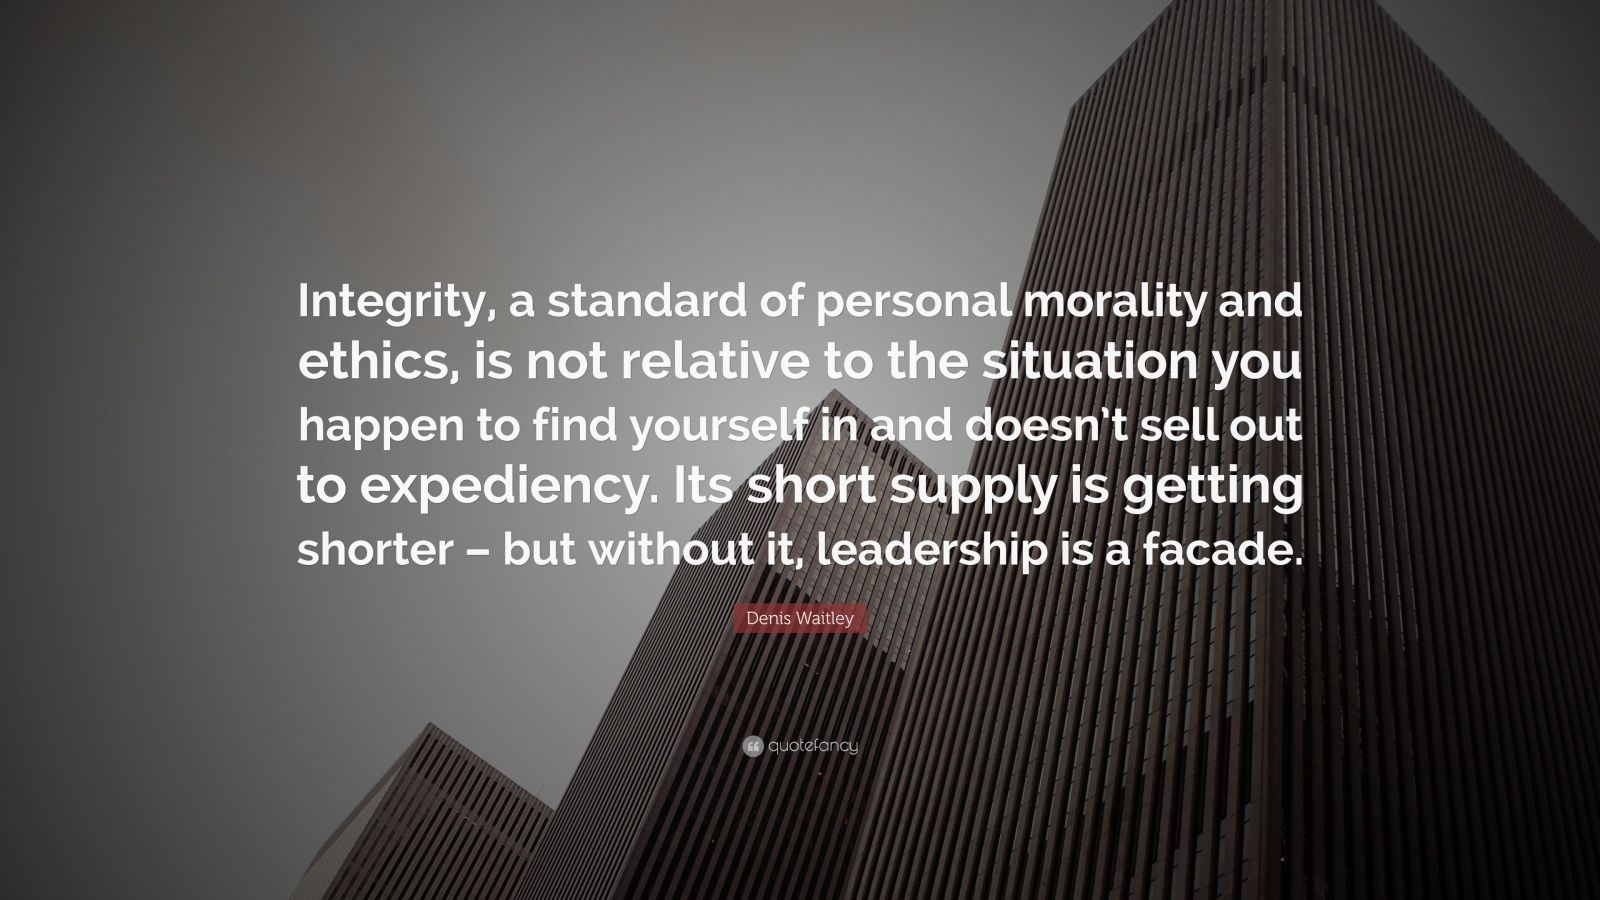 """Denis Waitley Quote: """"Integrity, a standard of personal morality and ethics, is not relative to the situation you happen to find yourself in and doesn't sell out to expediency. Its short supply is getting shorter – but without it, leadership is a facade."""""""